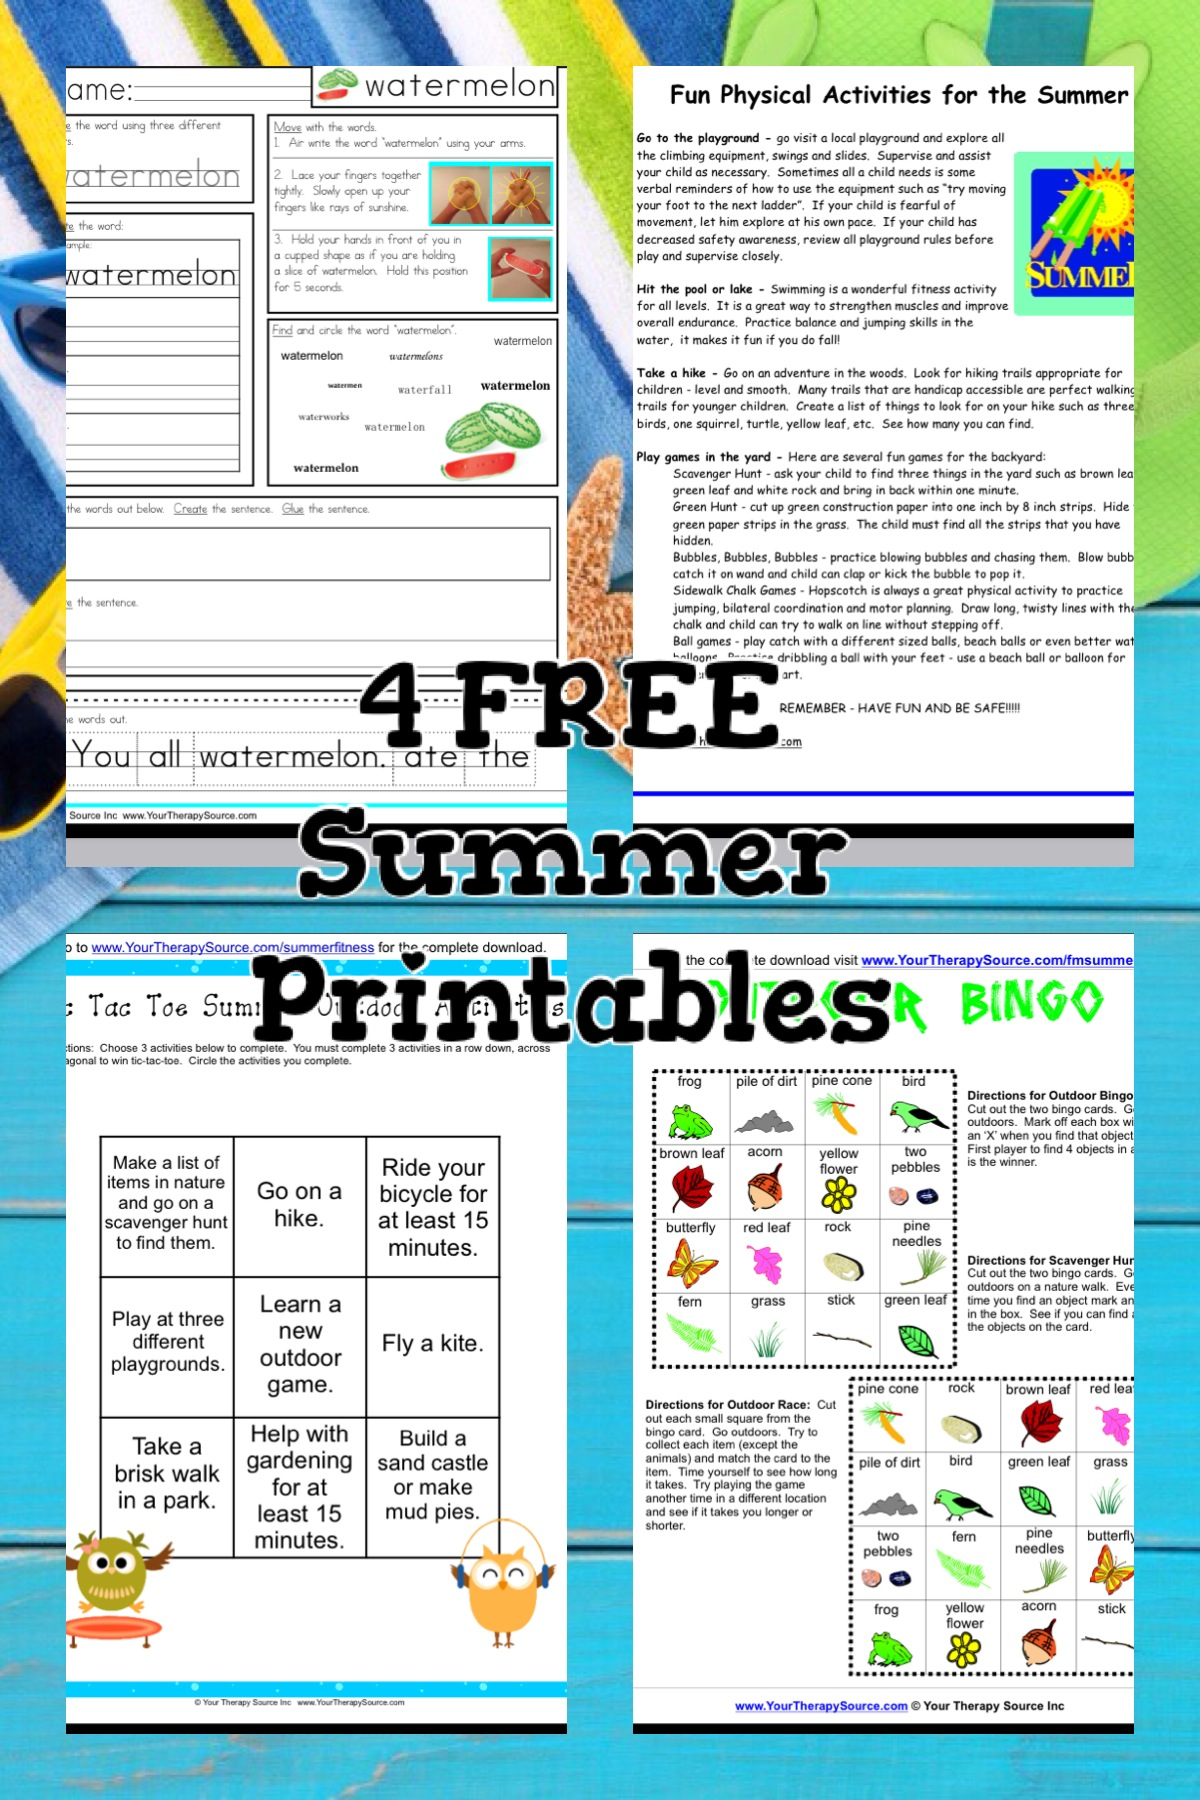 Free Summer Printables for Fine and Gross Motor Skills